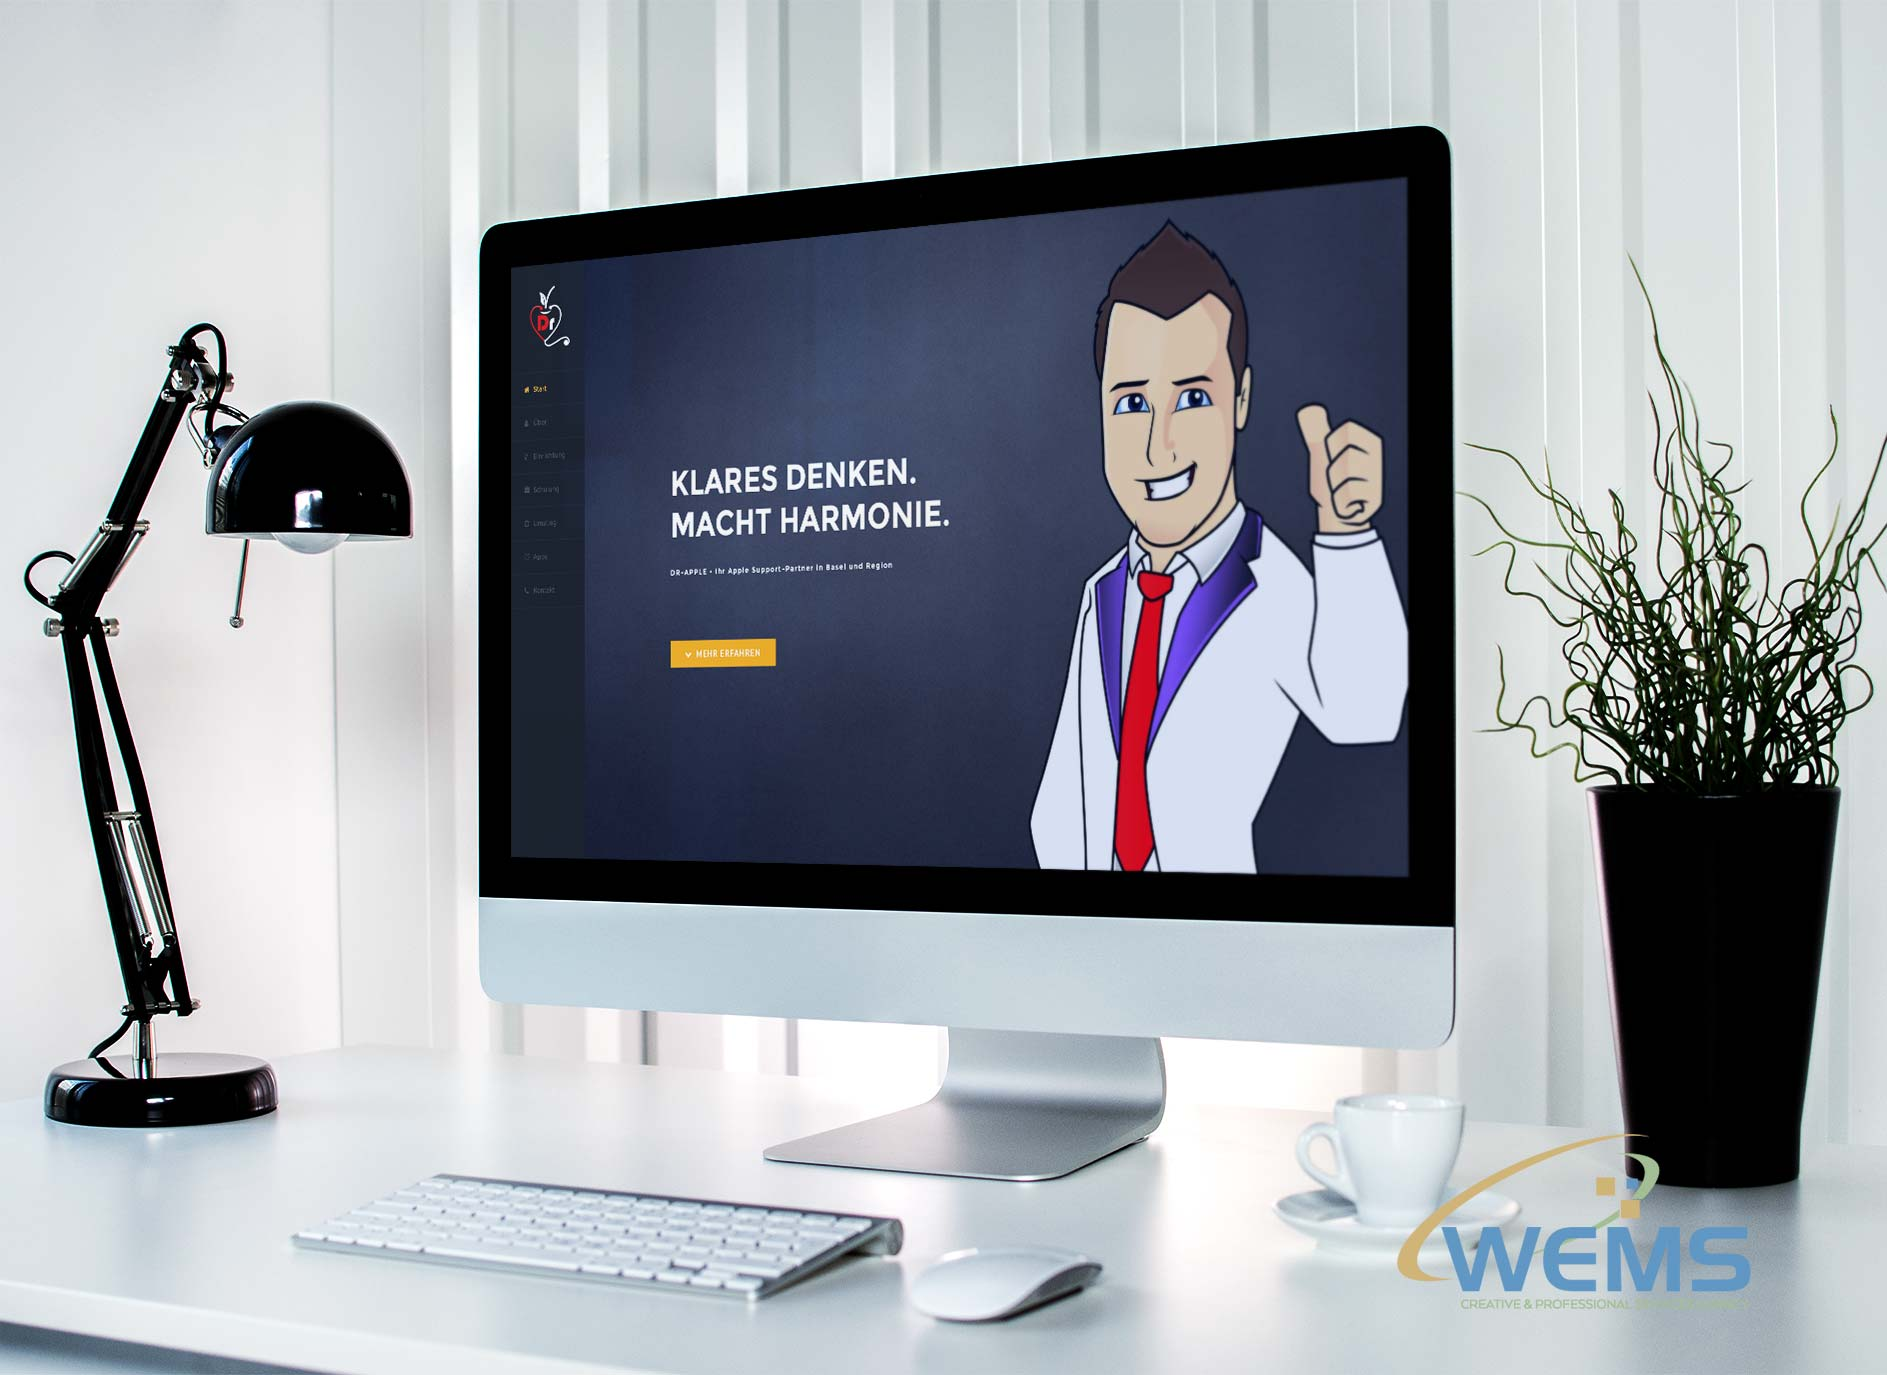 wems webdesign basel dr apple 1 - Webdesign Agency with search engine optimization (SEO)